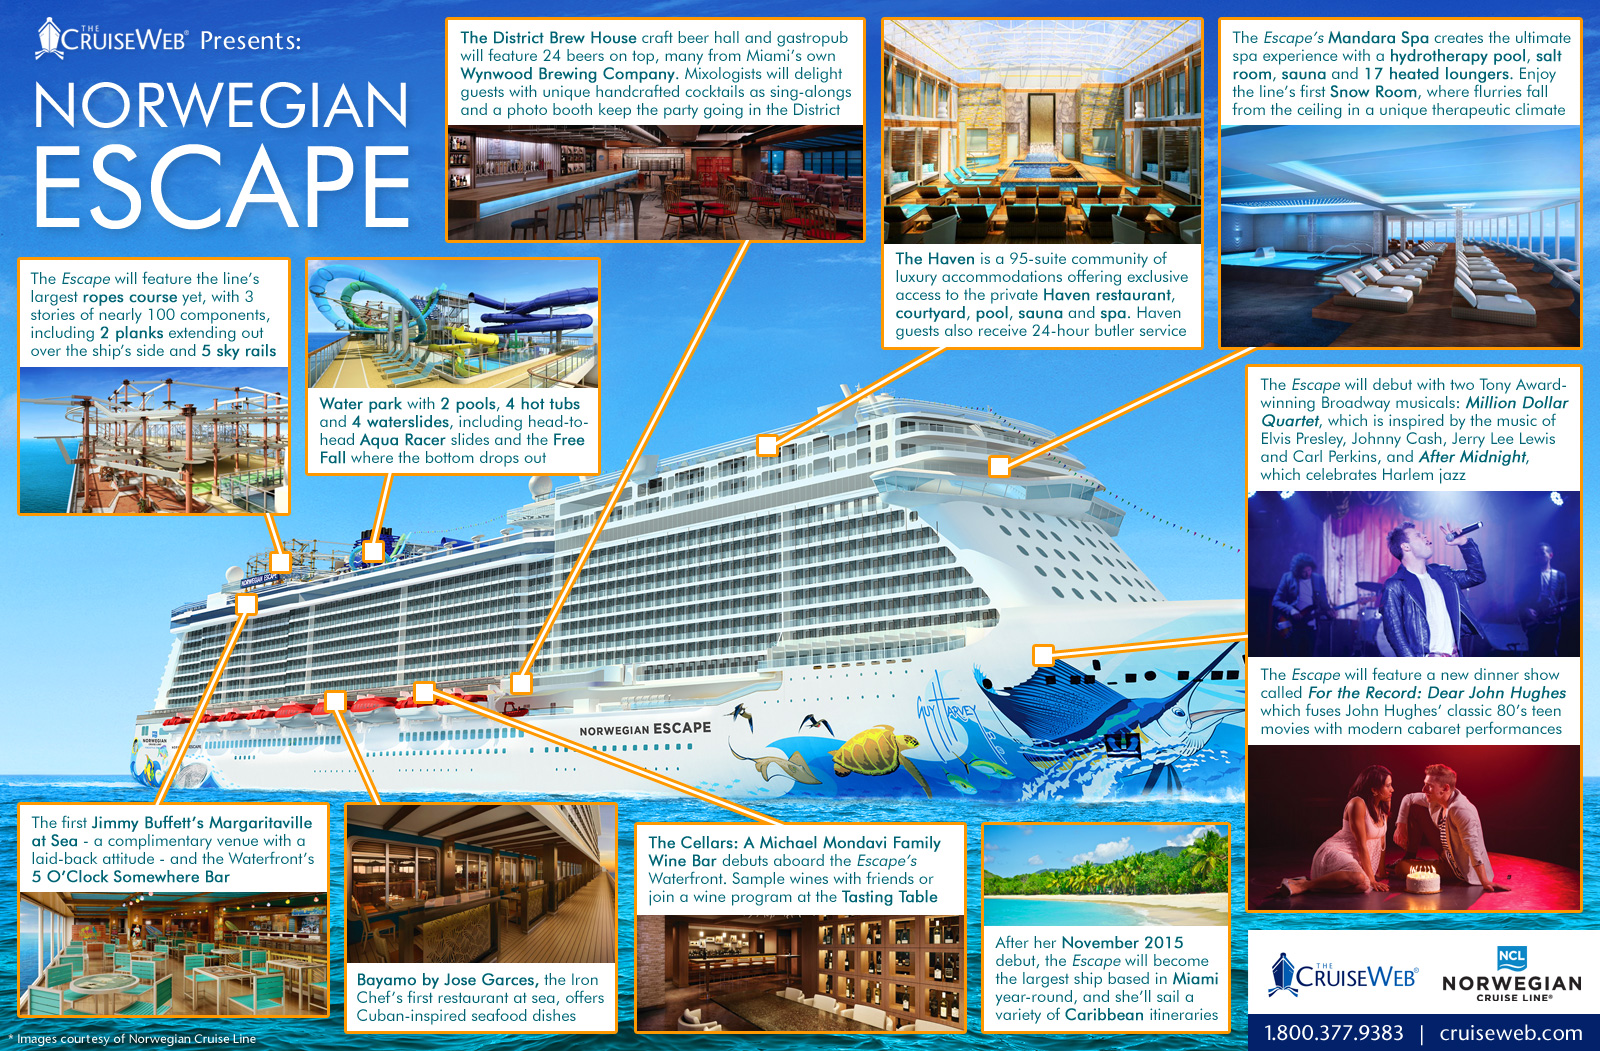 Norwegian Escape: An Infographic